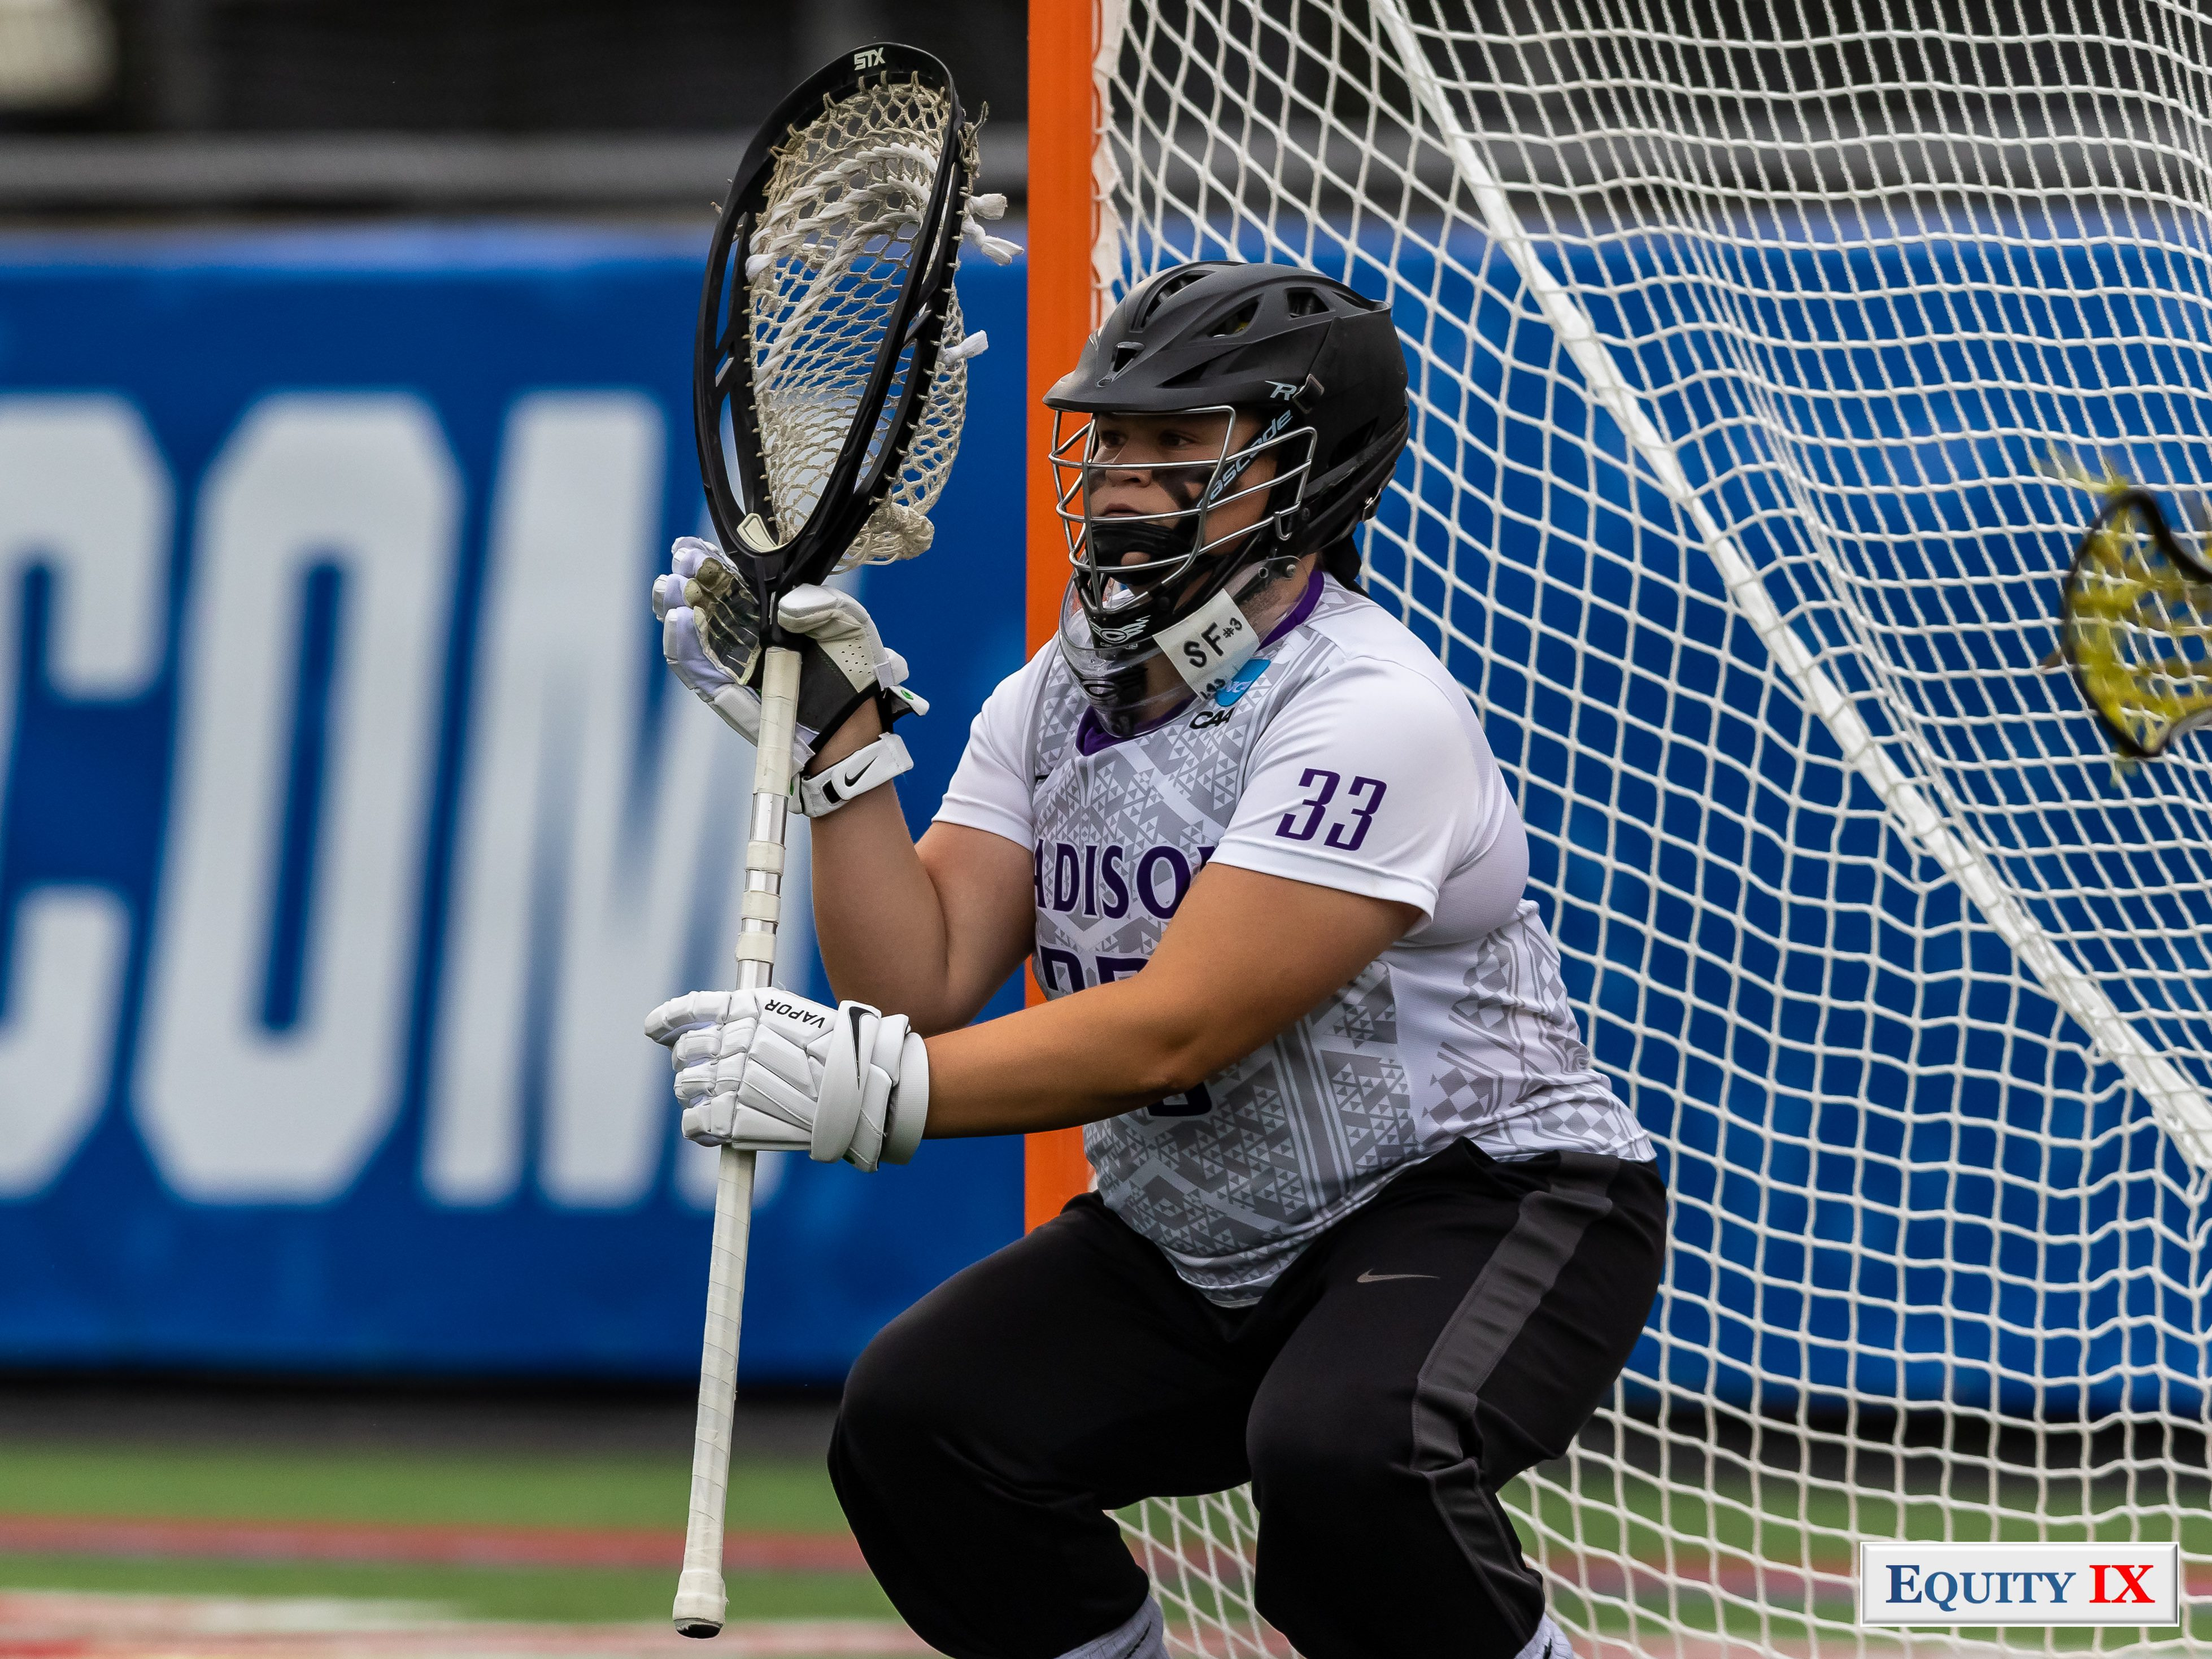 #33 Molly Dougherty (JUM Goalie) stand crouched down in lacrosse goal wearing a black helmet and holding onto an oversized lacrosse stick in preparation to stop a free position shot - 2018 NCAA Women's Lacrosse Championship Game © Equity IX - SportsOgram - Leigh Ernst Friestedt